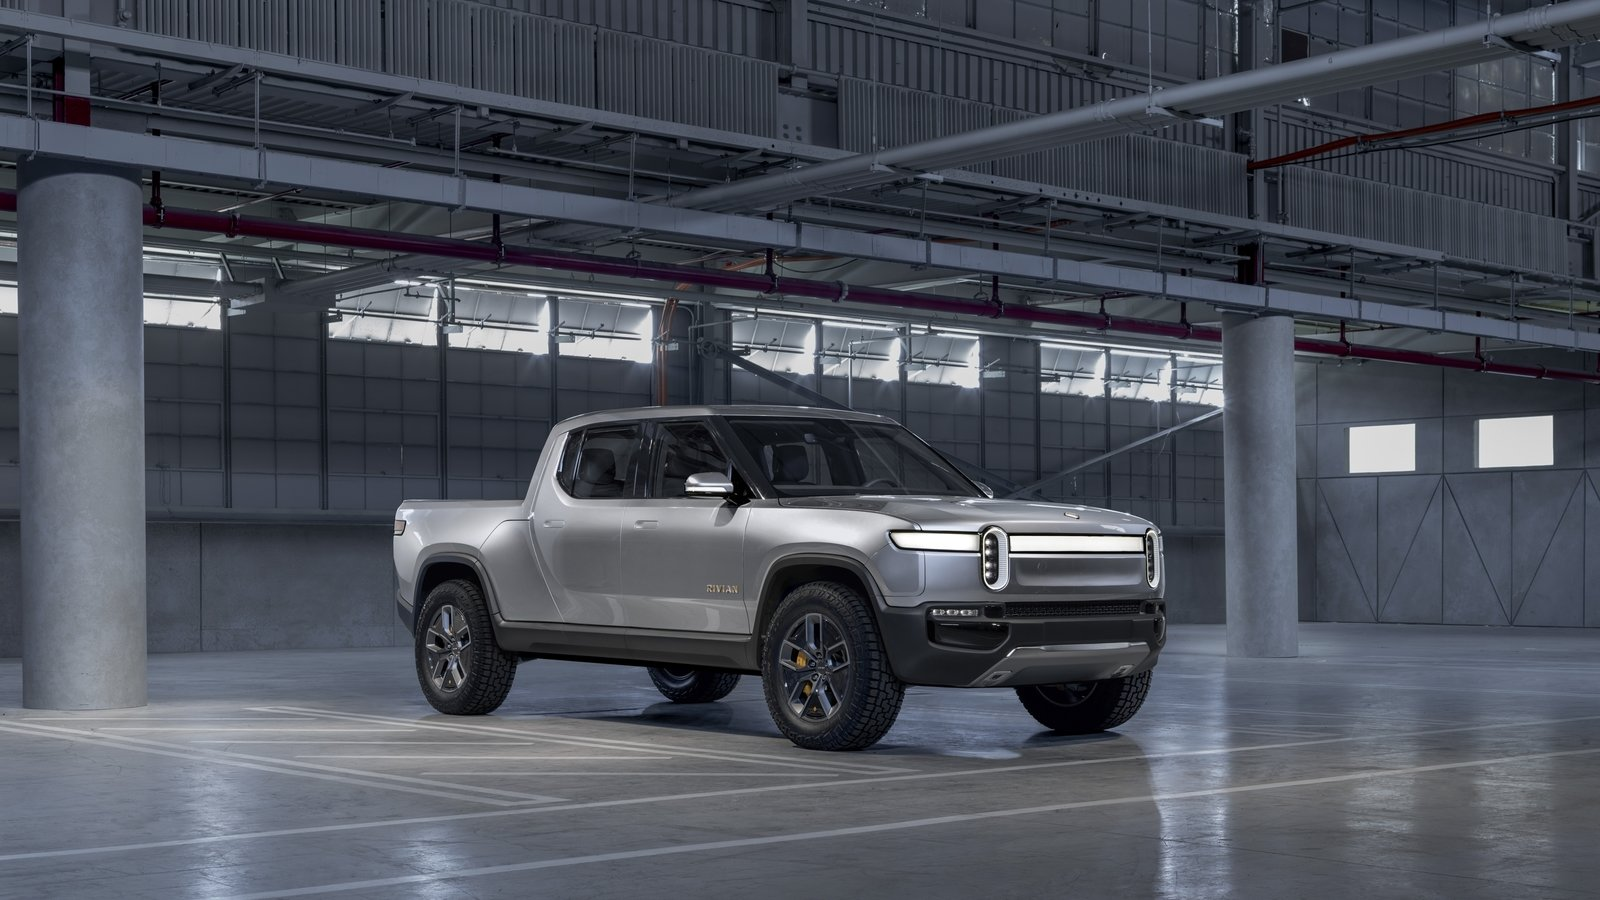 The 2020 Rivian R1T Electric Truck Middle Fingers Tesla ...